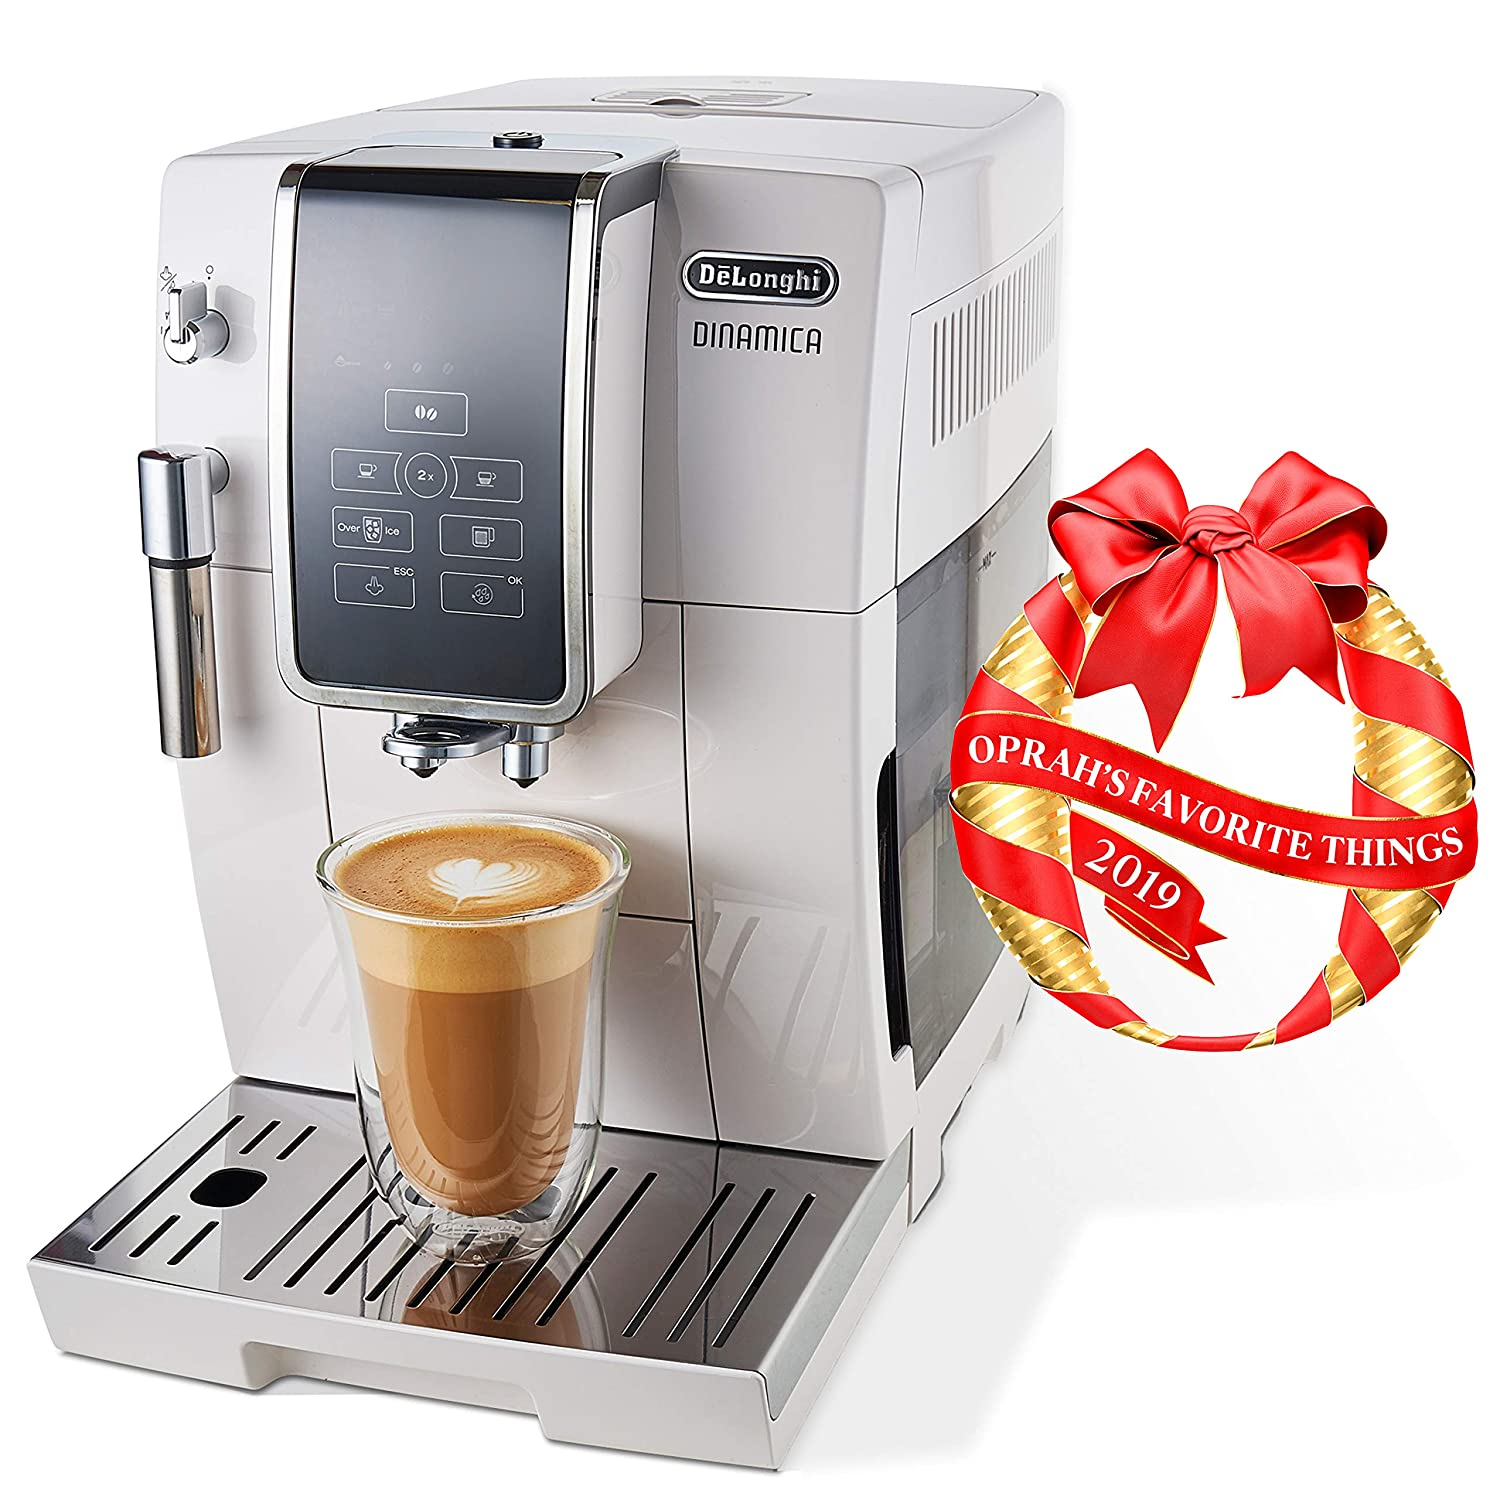 De'Longhi Dinamica Automatic Coffee & Espresso Machine TrueBrew (Iced-Coffee), Burr